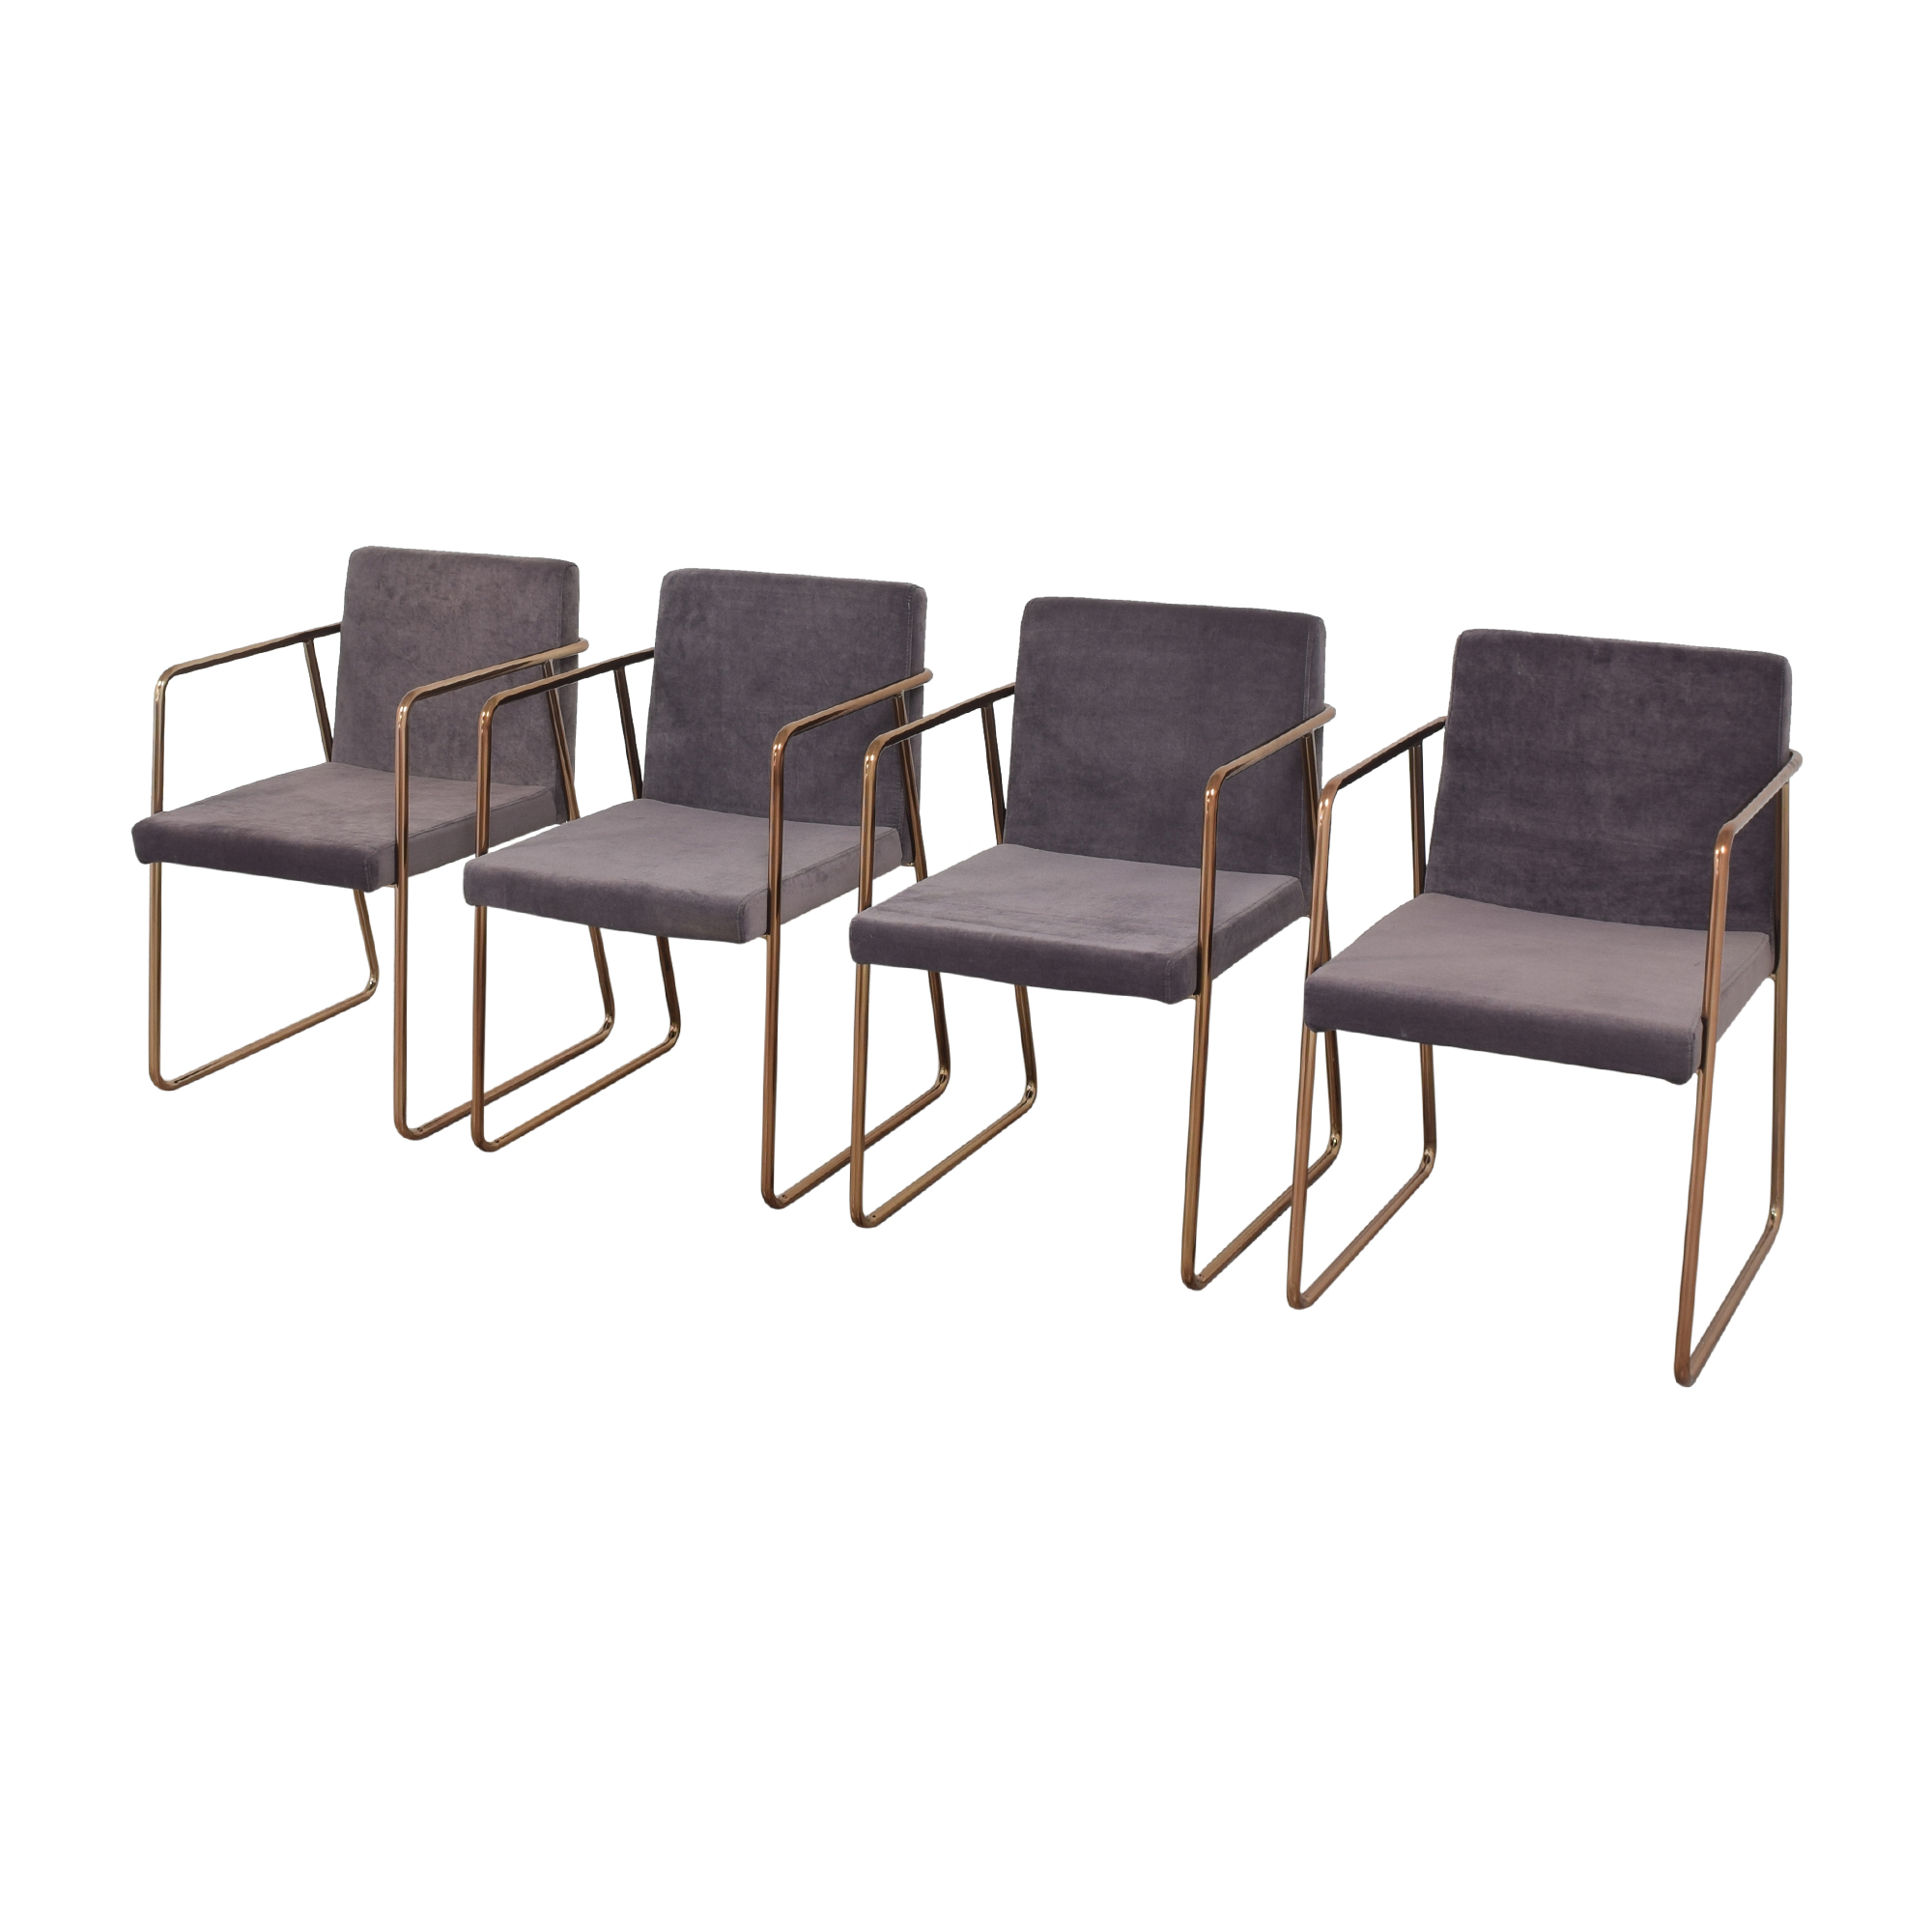 CB2 Rouka Chairs / Dining Chairs